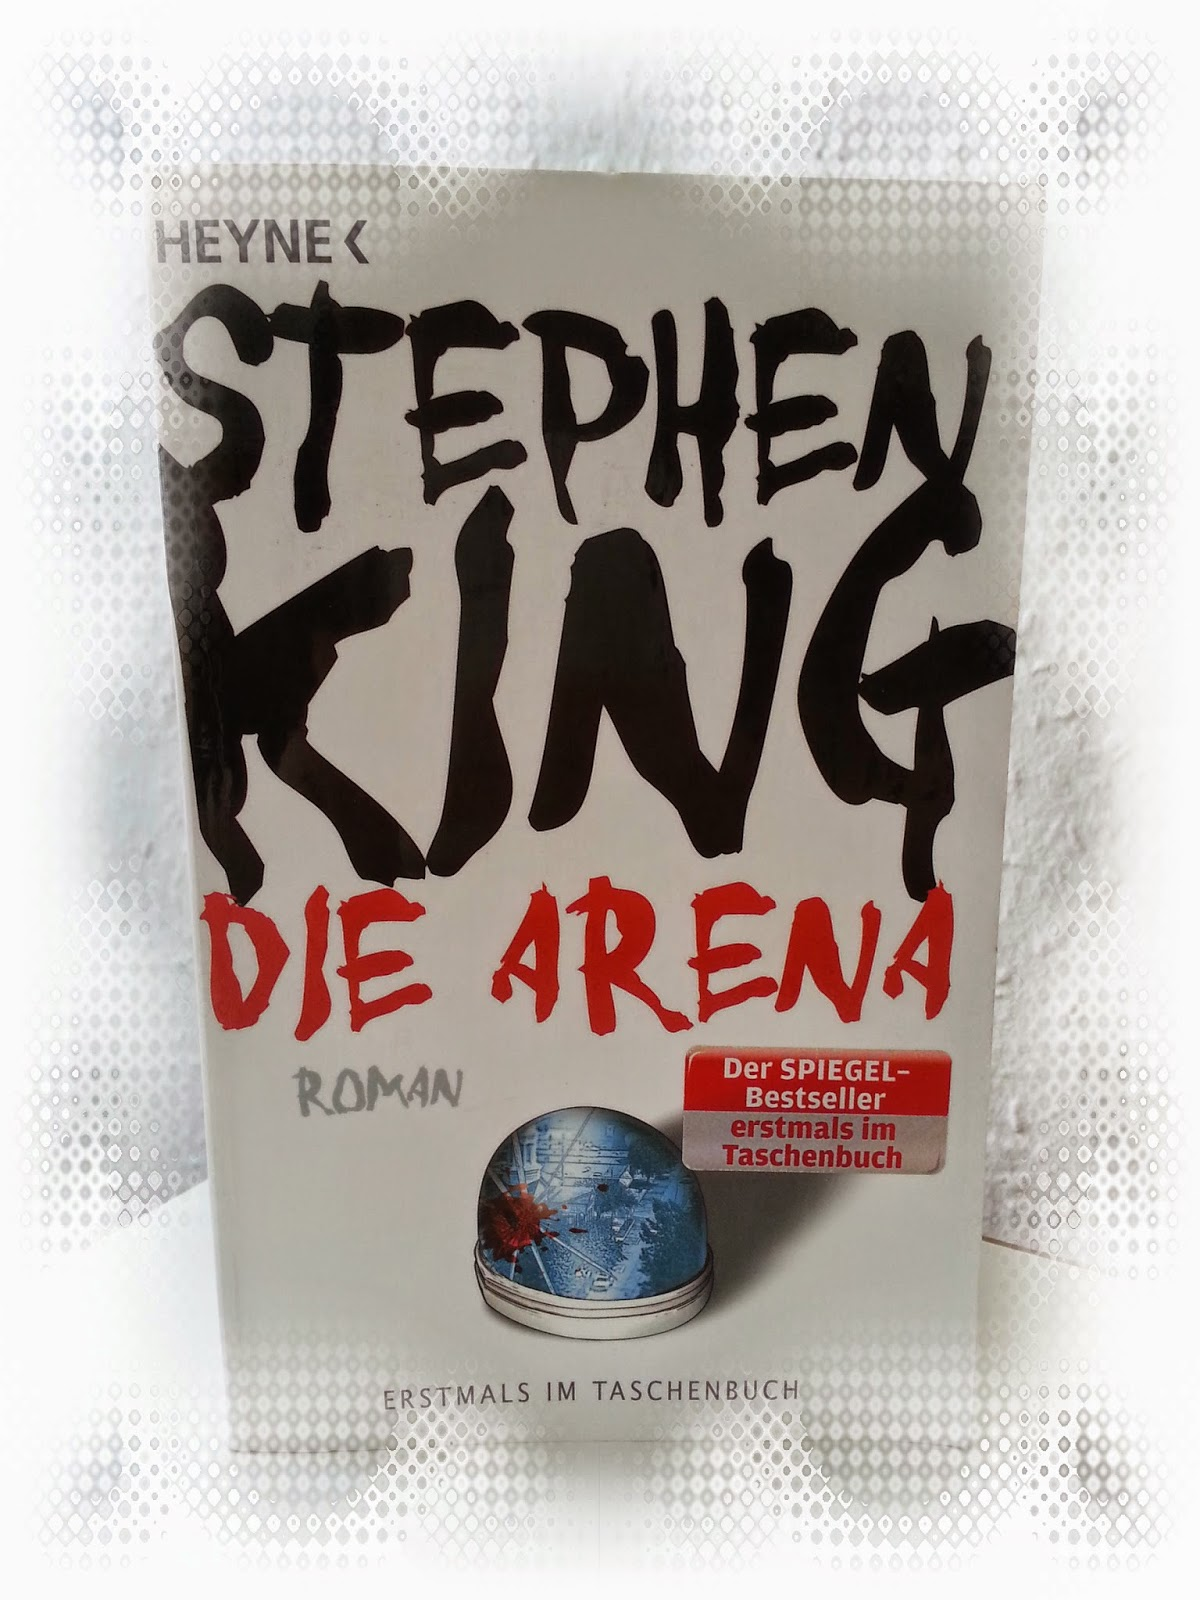 http://www.amazon.de/Die-Arena-Under-Stephen-King/dp/3453435230/ref=sr_1_1_bnp_1_pap?s=books&ie=UTF8&qid=1399921095&sr=1-1&keywords=die+arena